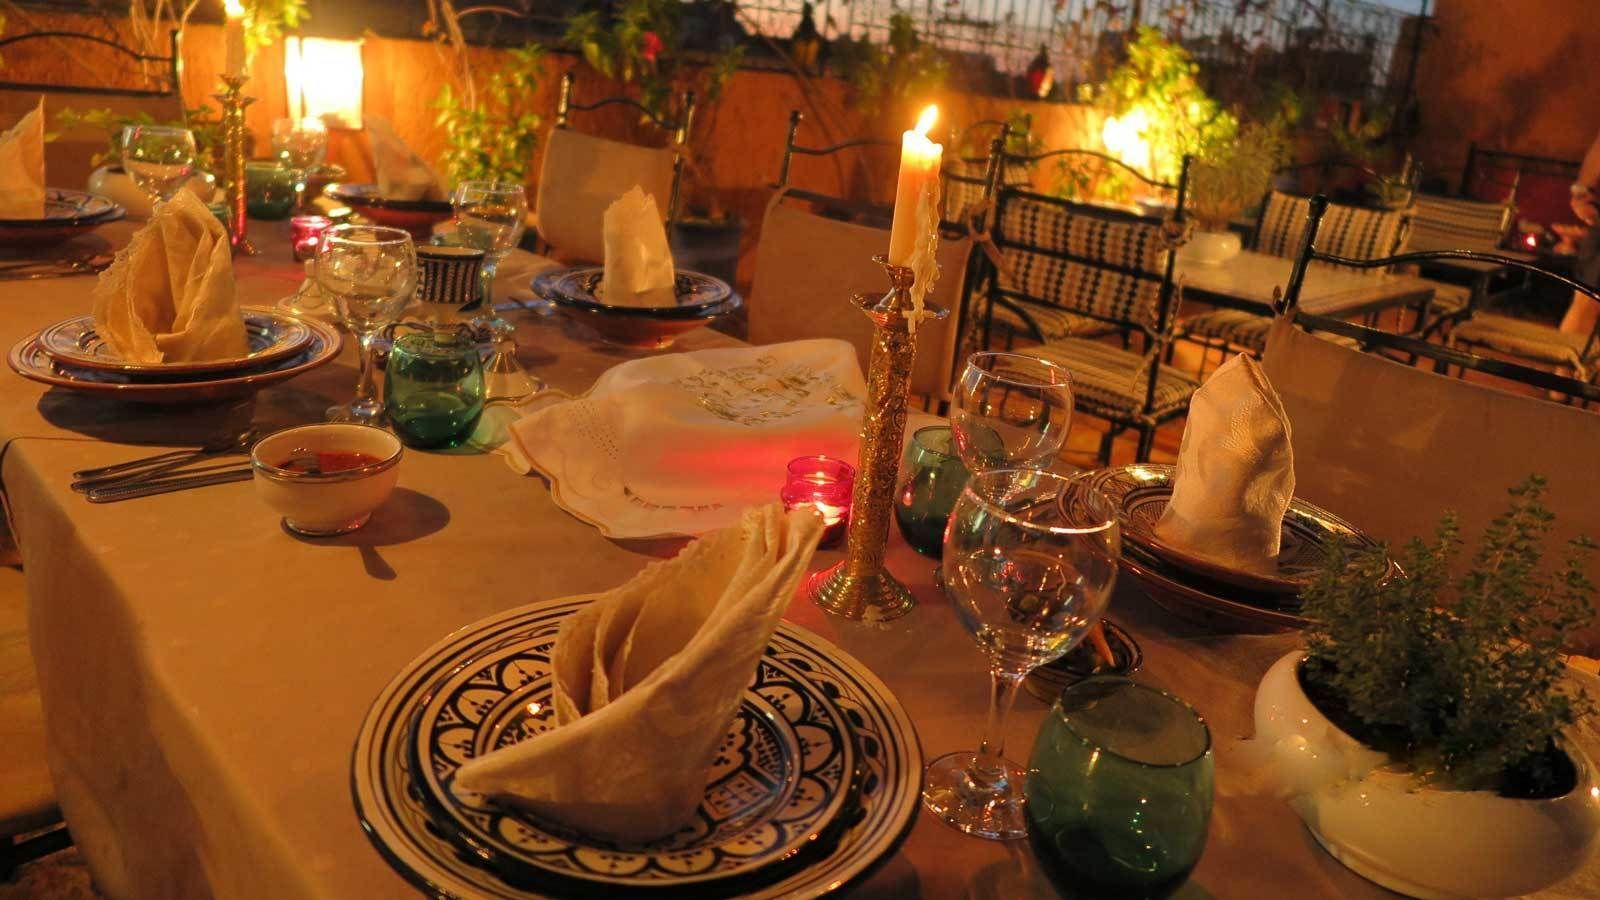 dinner by candlelight in Marrakech